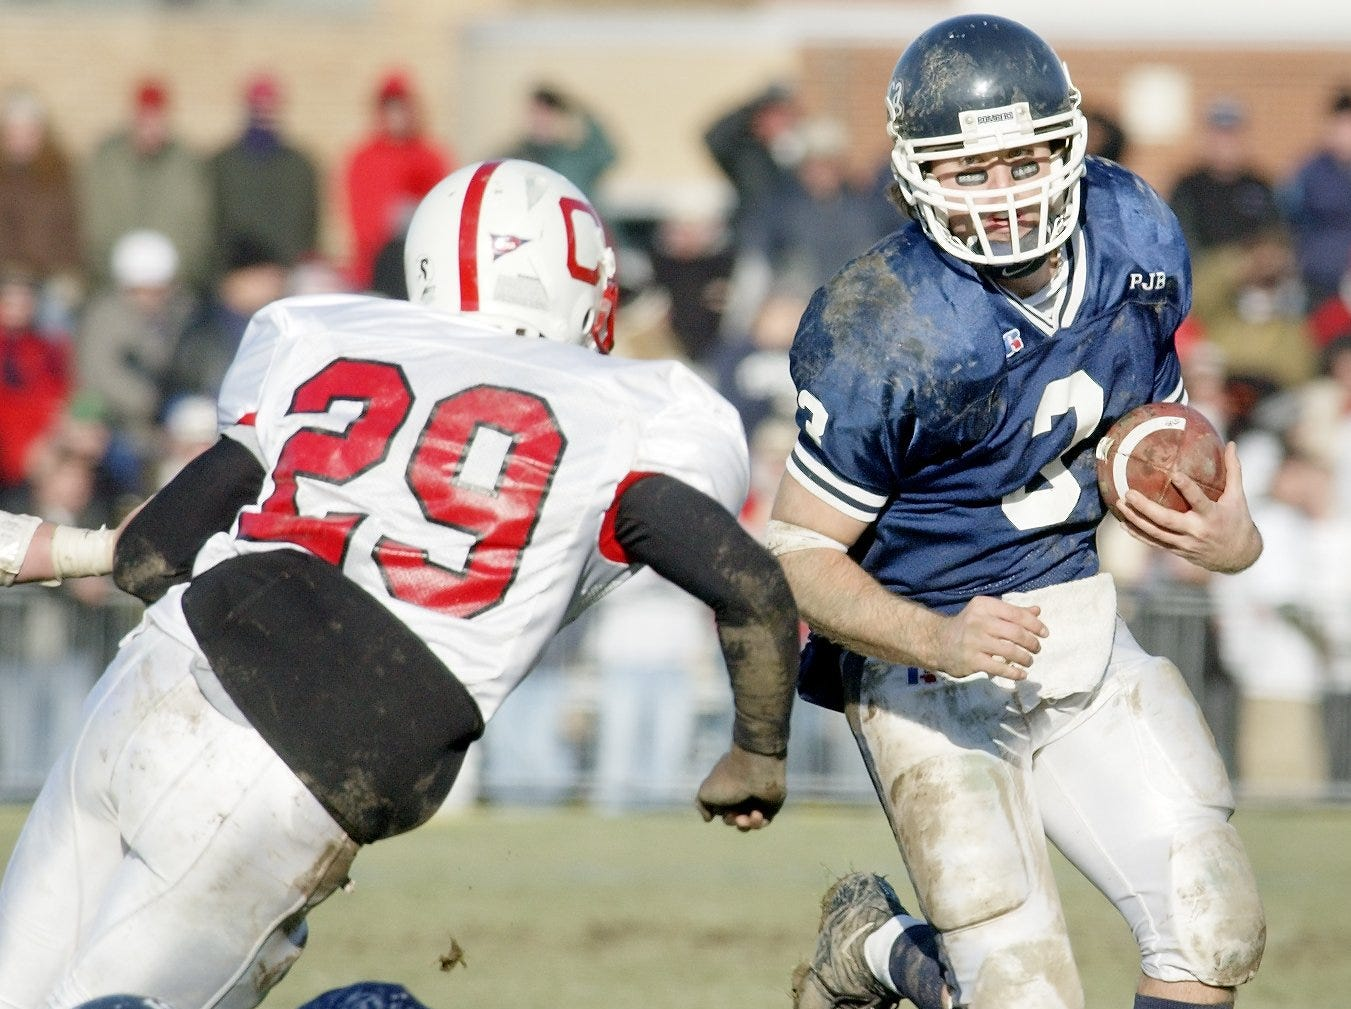 2003: IC's Josh Felicetti, 3, runs downfield as Cortland's Stef Sair, 29, defends during the Cortaca Jug game Nov. 15. The Bombers, 8-2 after last week's 16-15 loss to Cortland, are back in the NCAA playoffs for the second time in three years.